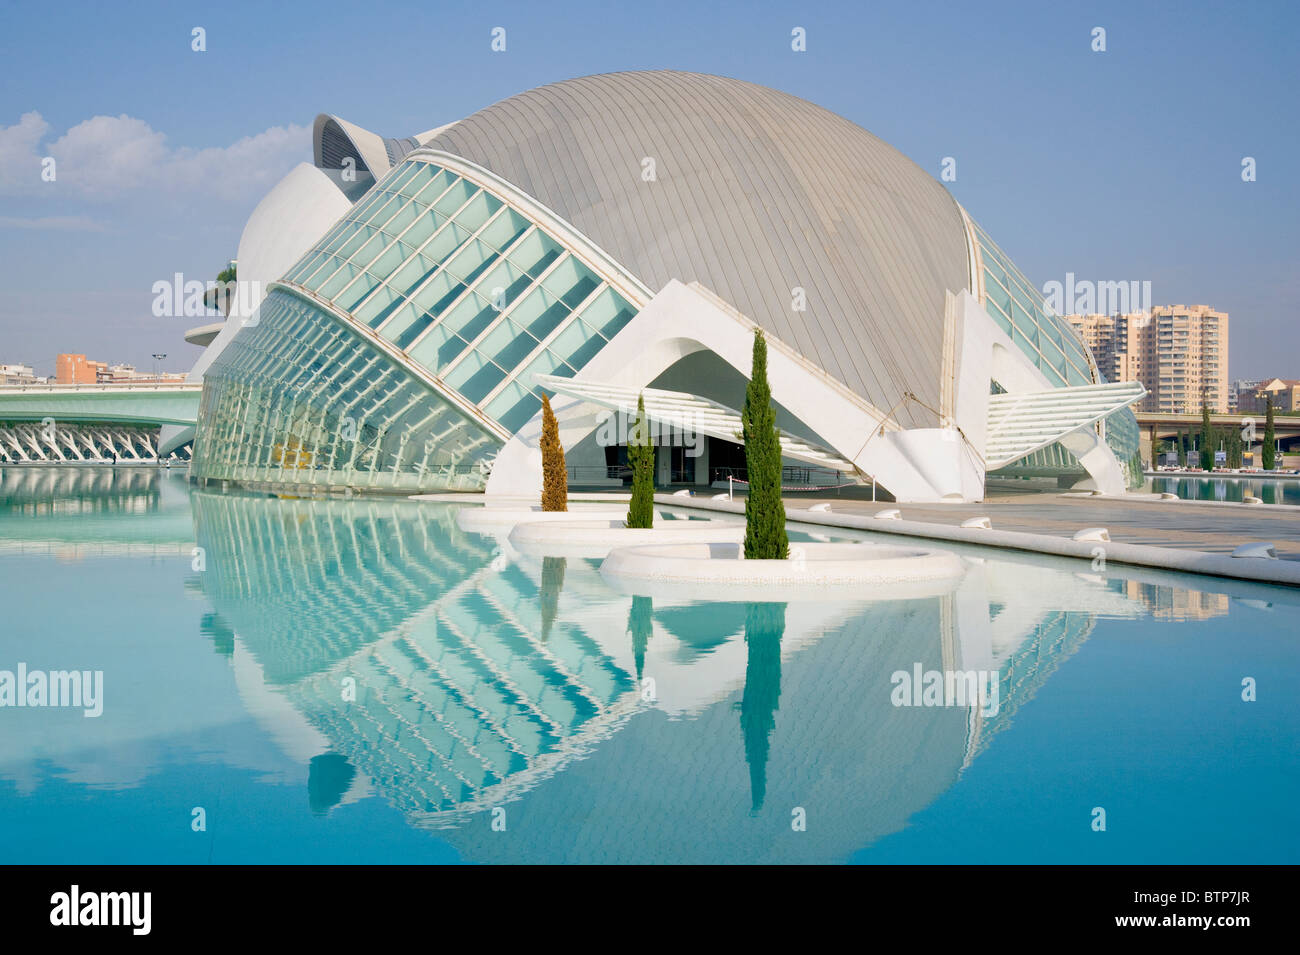 Arts and Science Park (Ciudad de las Artes y las Ciencias), Valencia, Spain - Stock Image